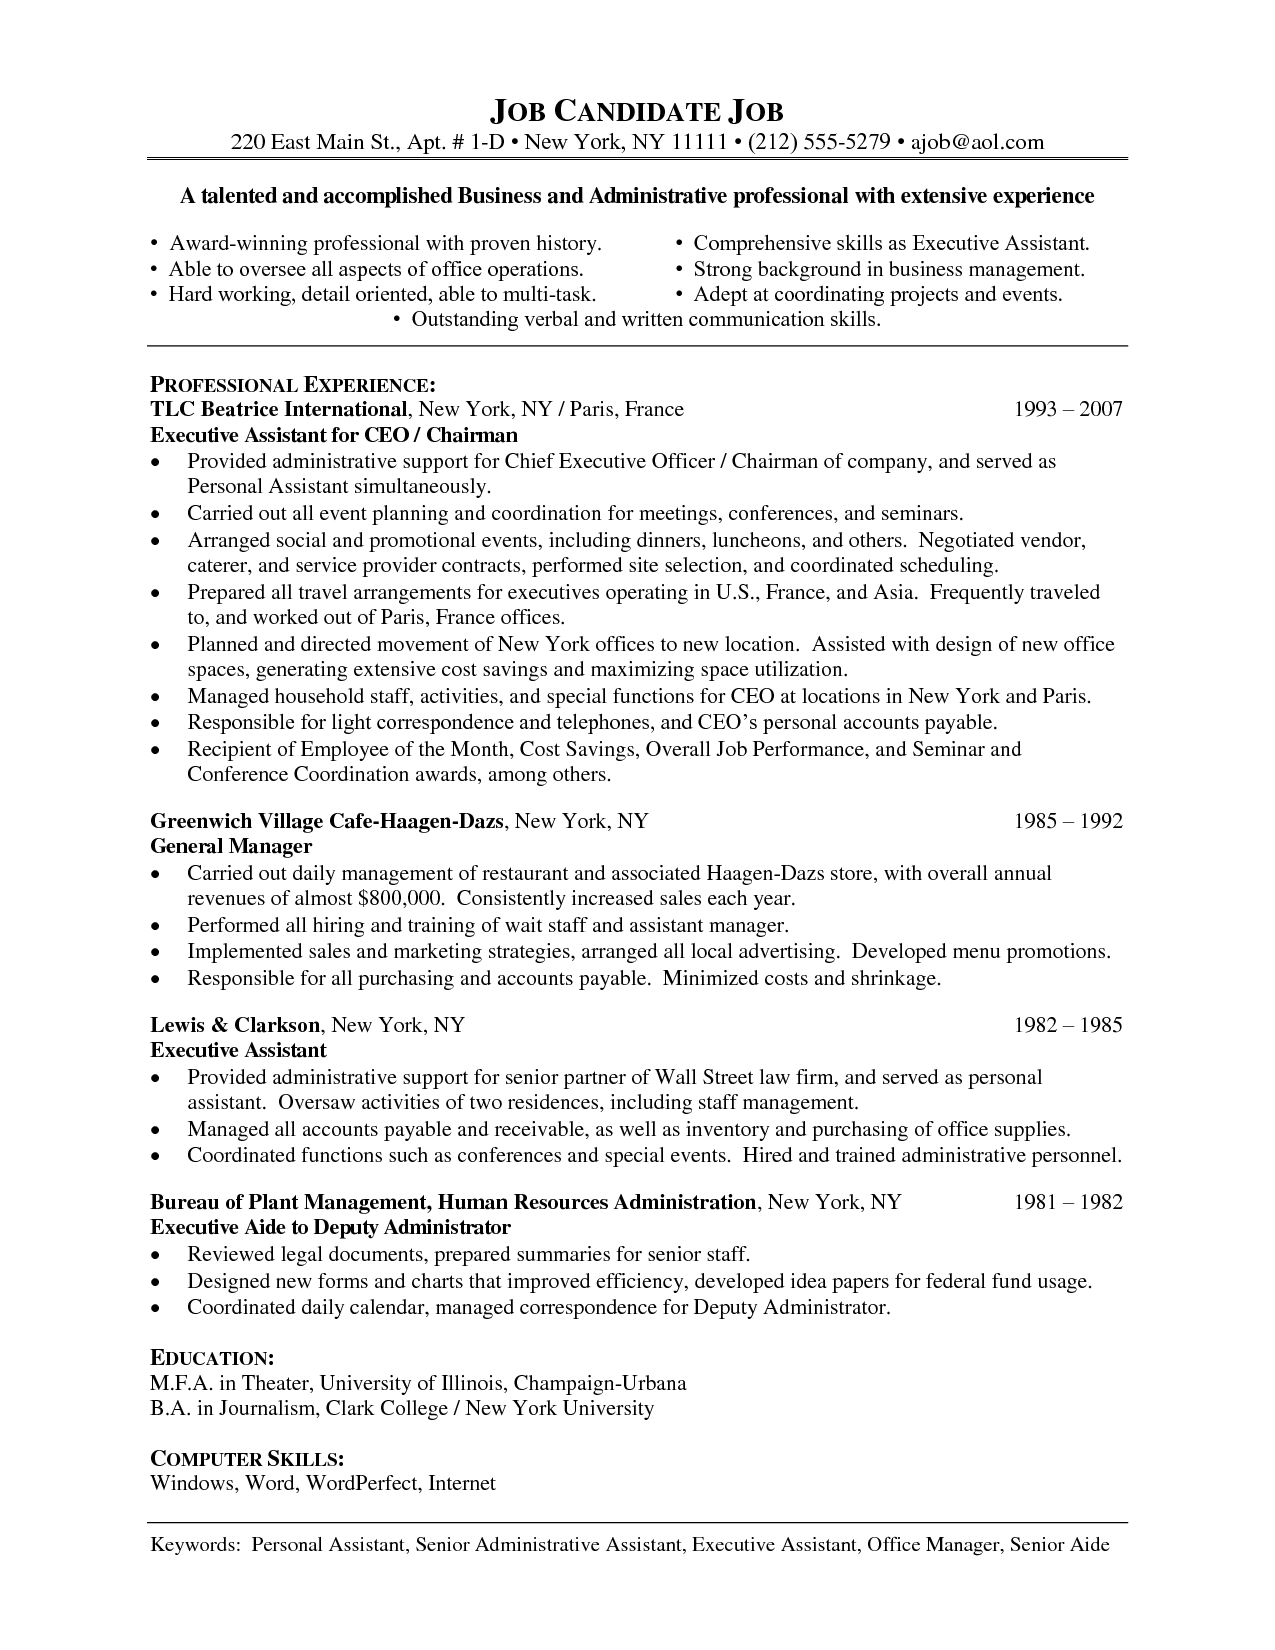 Office Admin Resume Sample System Administrator Linux Professional